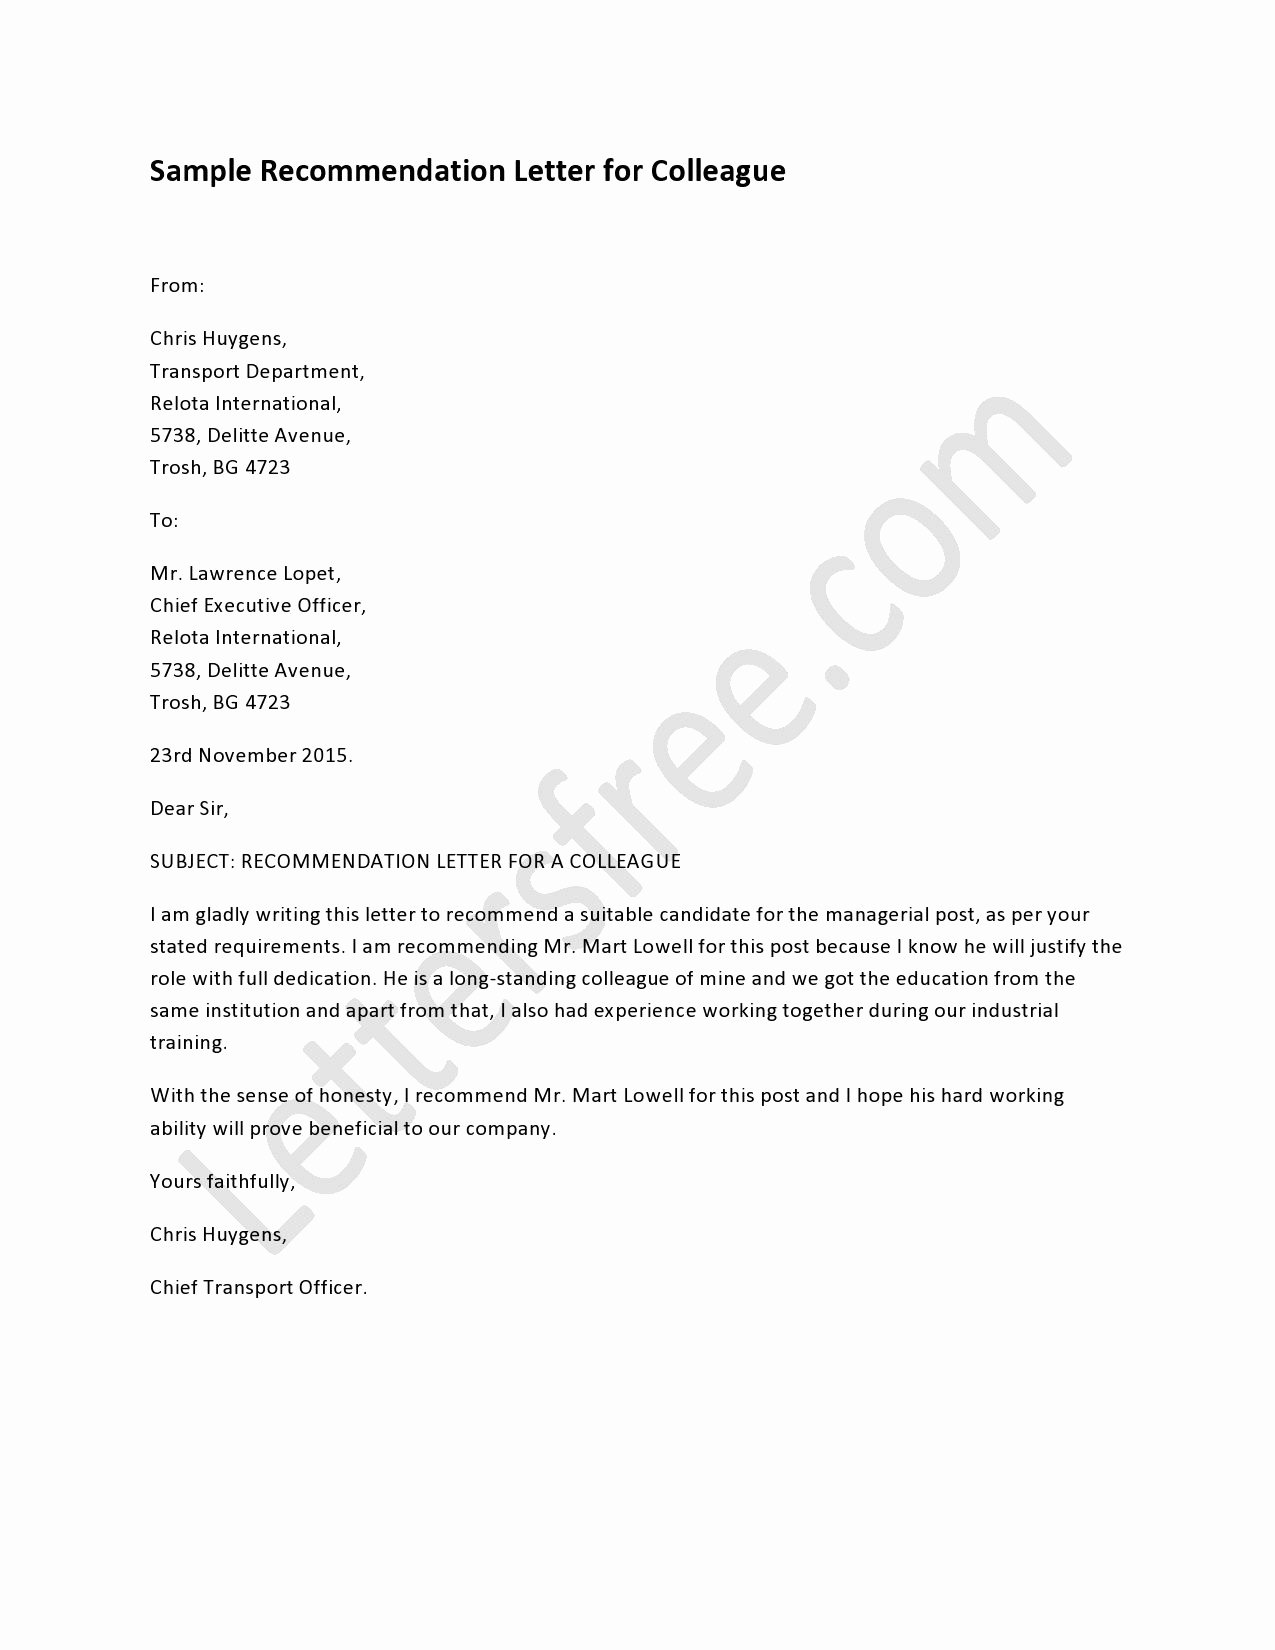 Letters Of Recommendation for Coworker Unique Example Of Re Mendation Letter for Colleague Sample